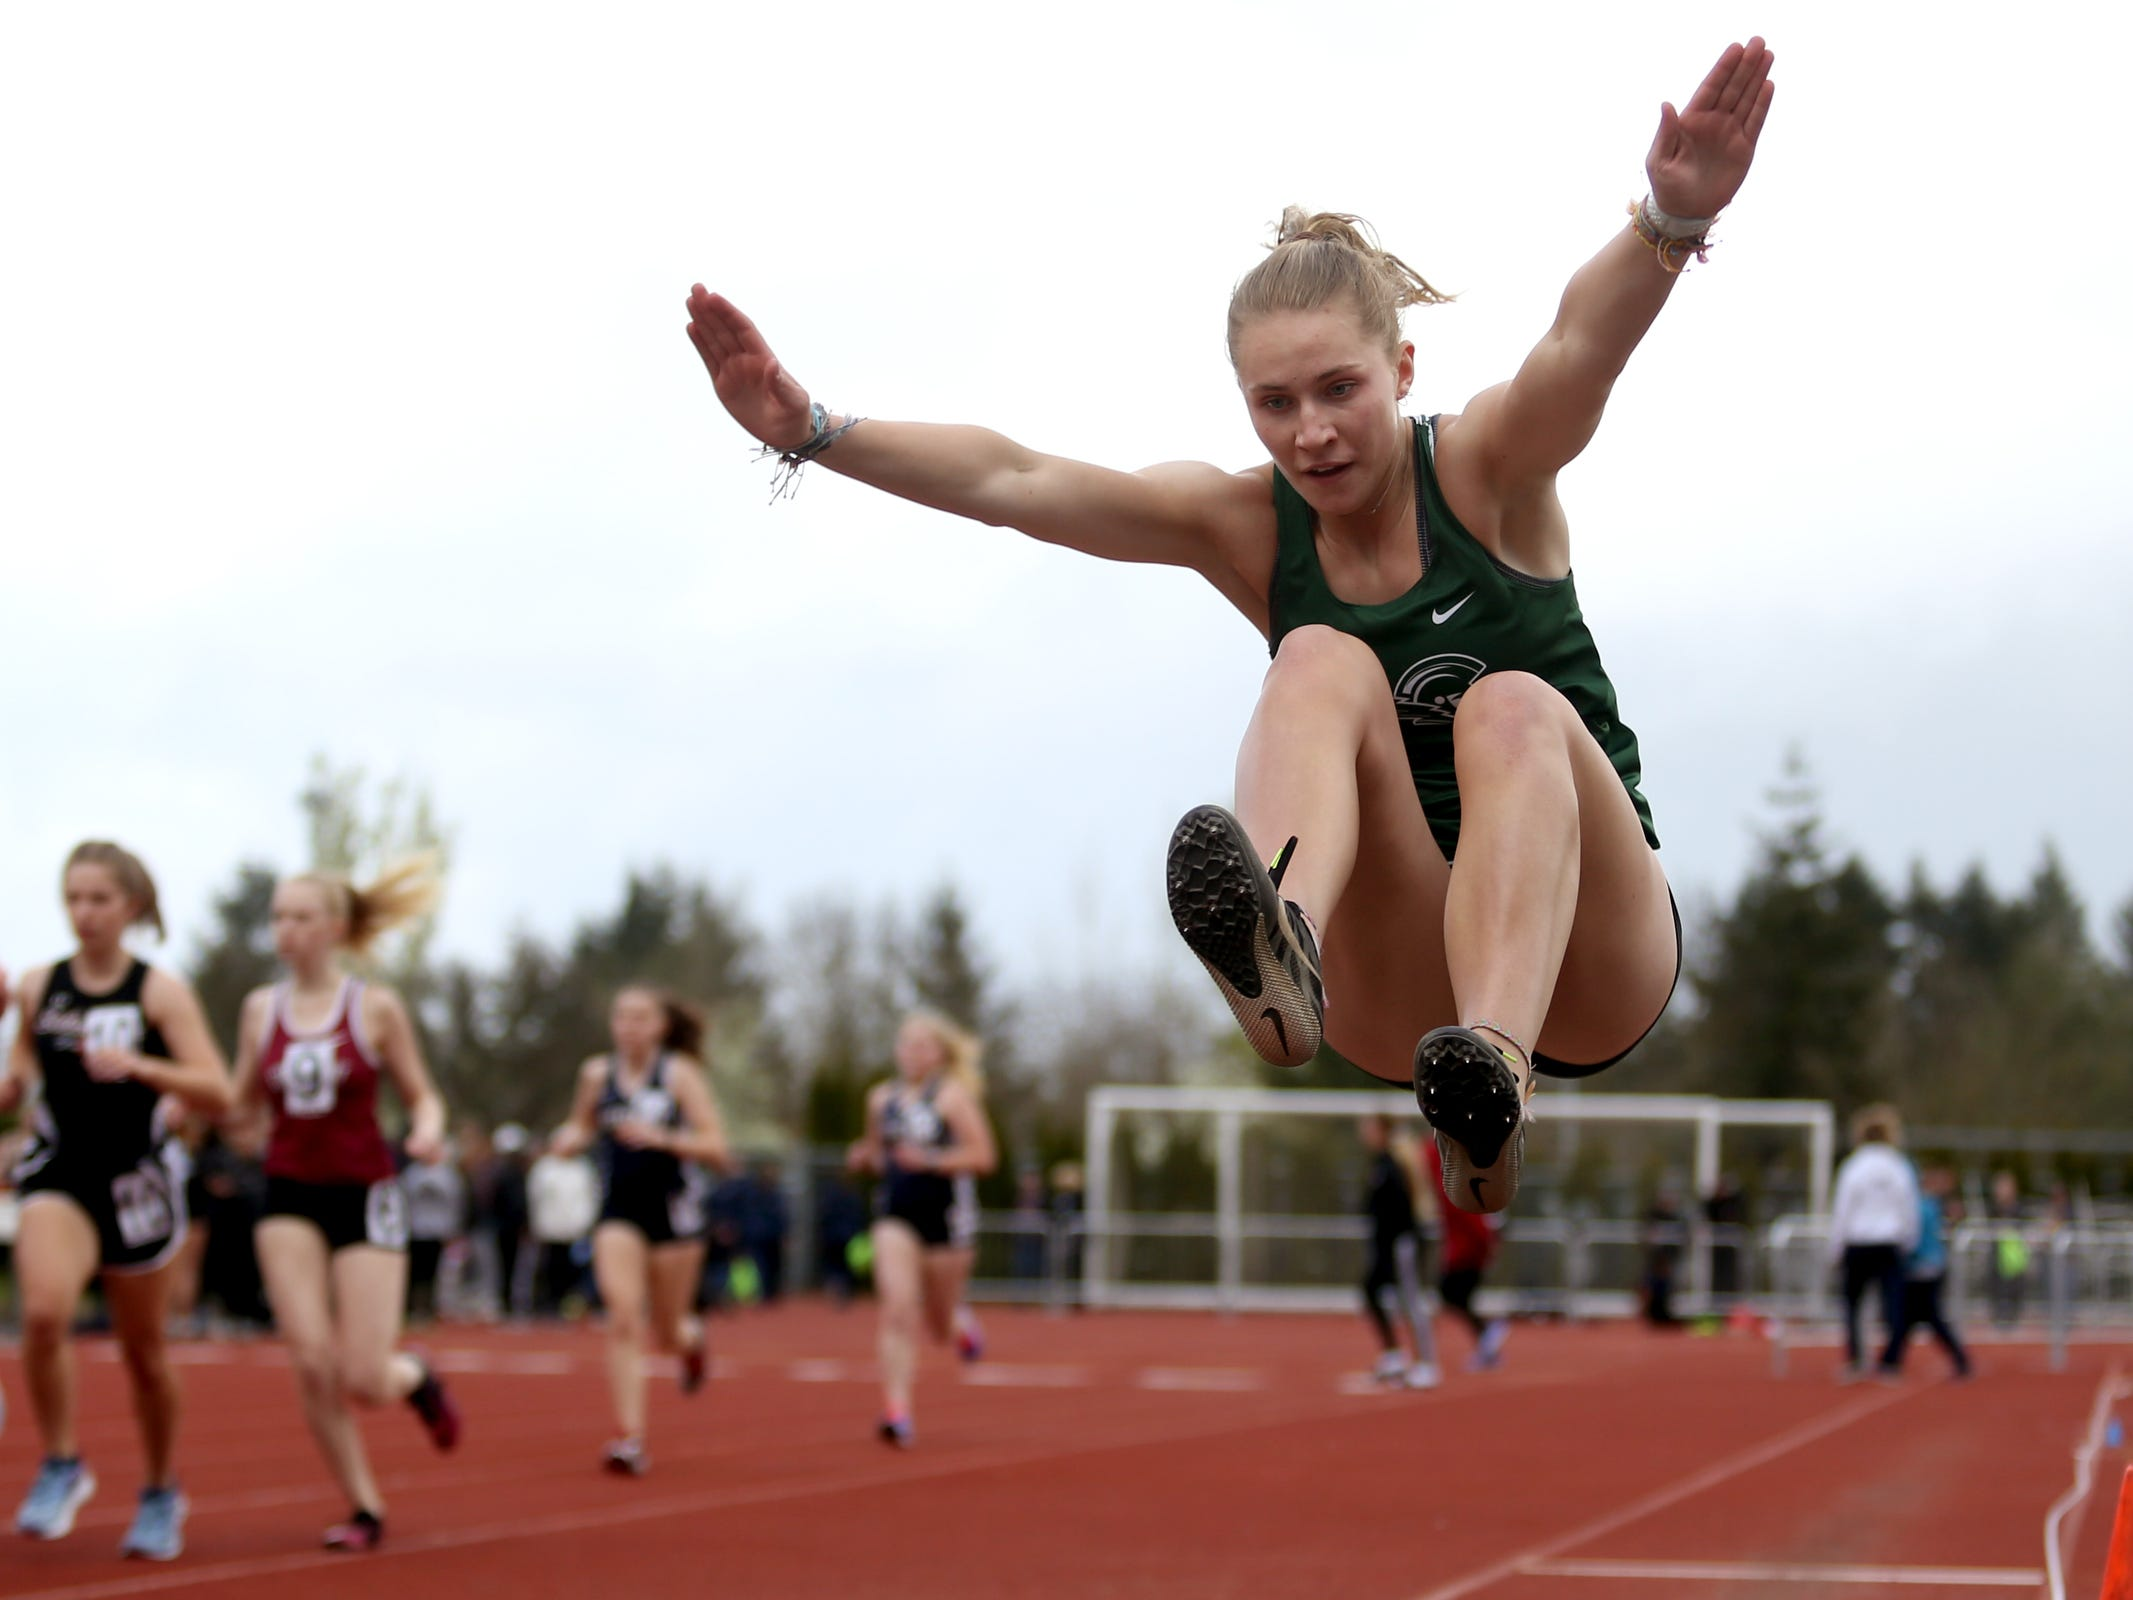 West Salem's Sarah Rice competes in the girls long jump during the Titan Track Classic high school track and field meet at West Salem High School on April 5, 2019.